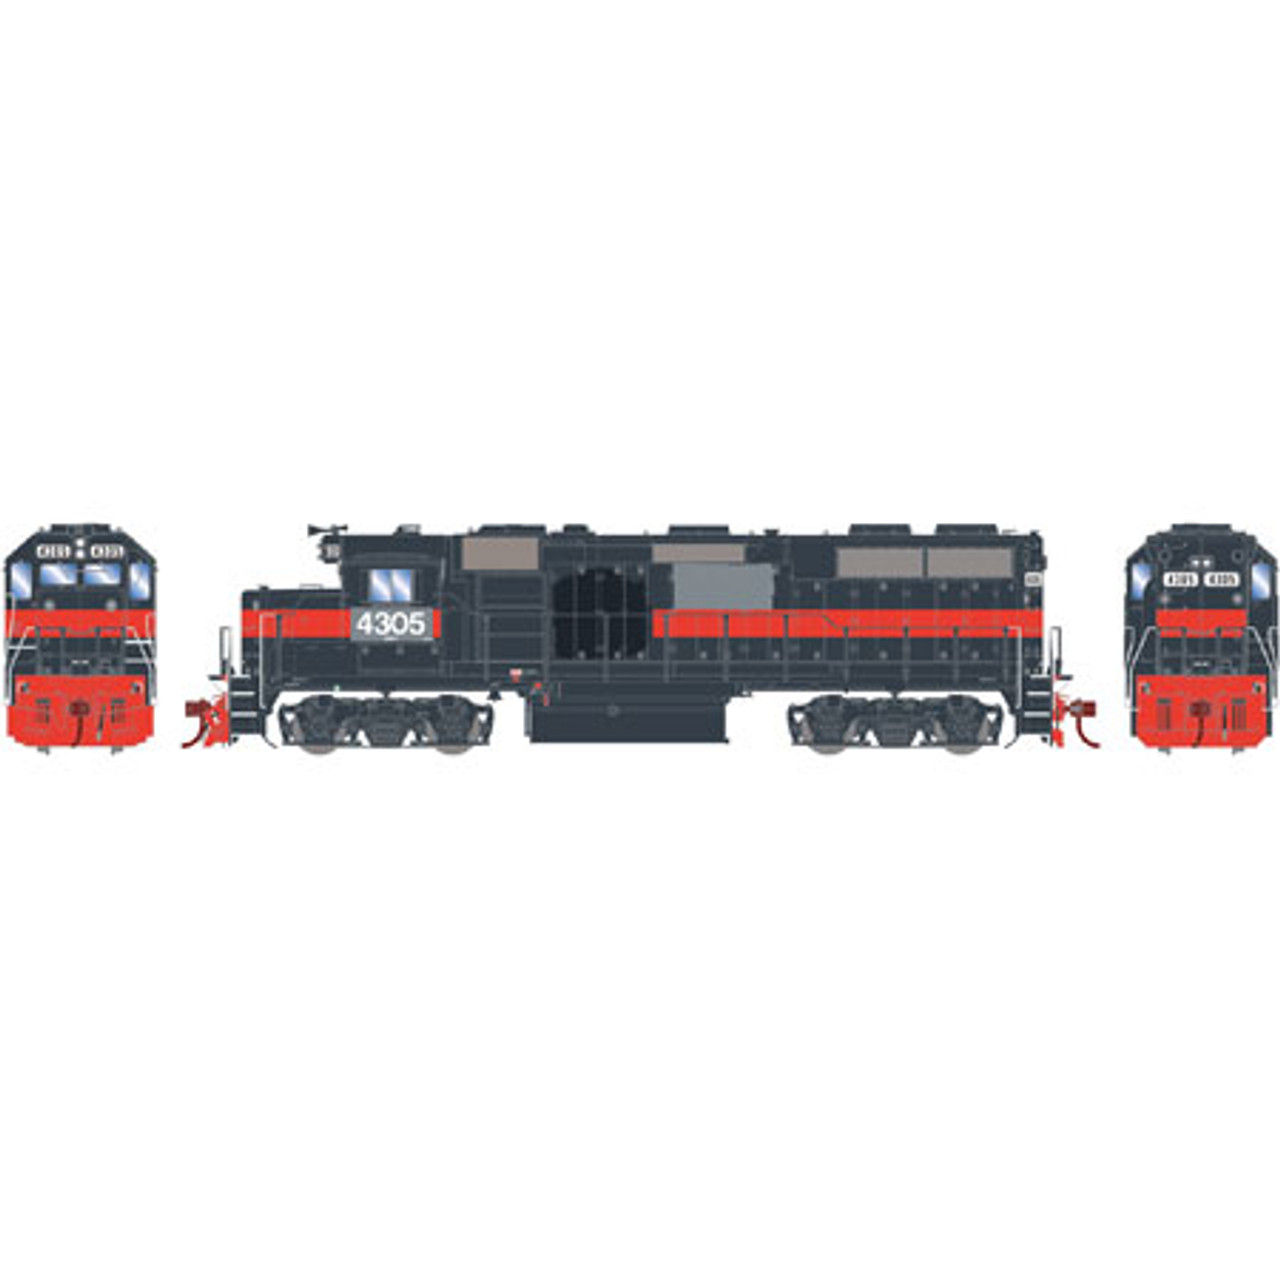 Athearn ATHG65609 GP39-2 Phase I CSX - ex-Guilford #4305 with DCC & Sound Tsunami2  (SCALE=HO)  Part #ATHG65609